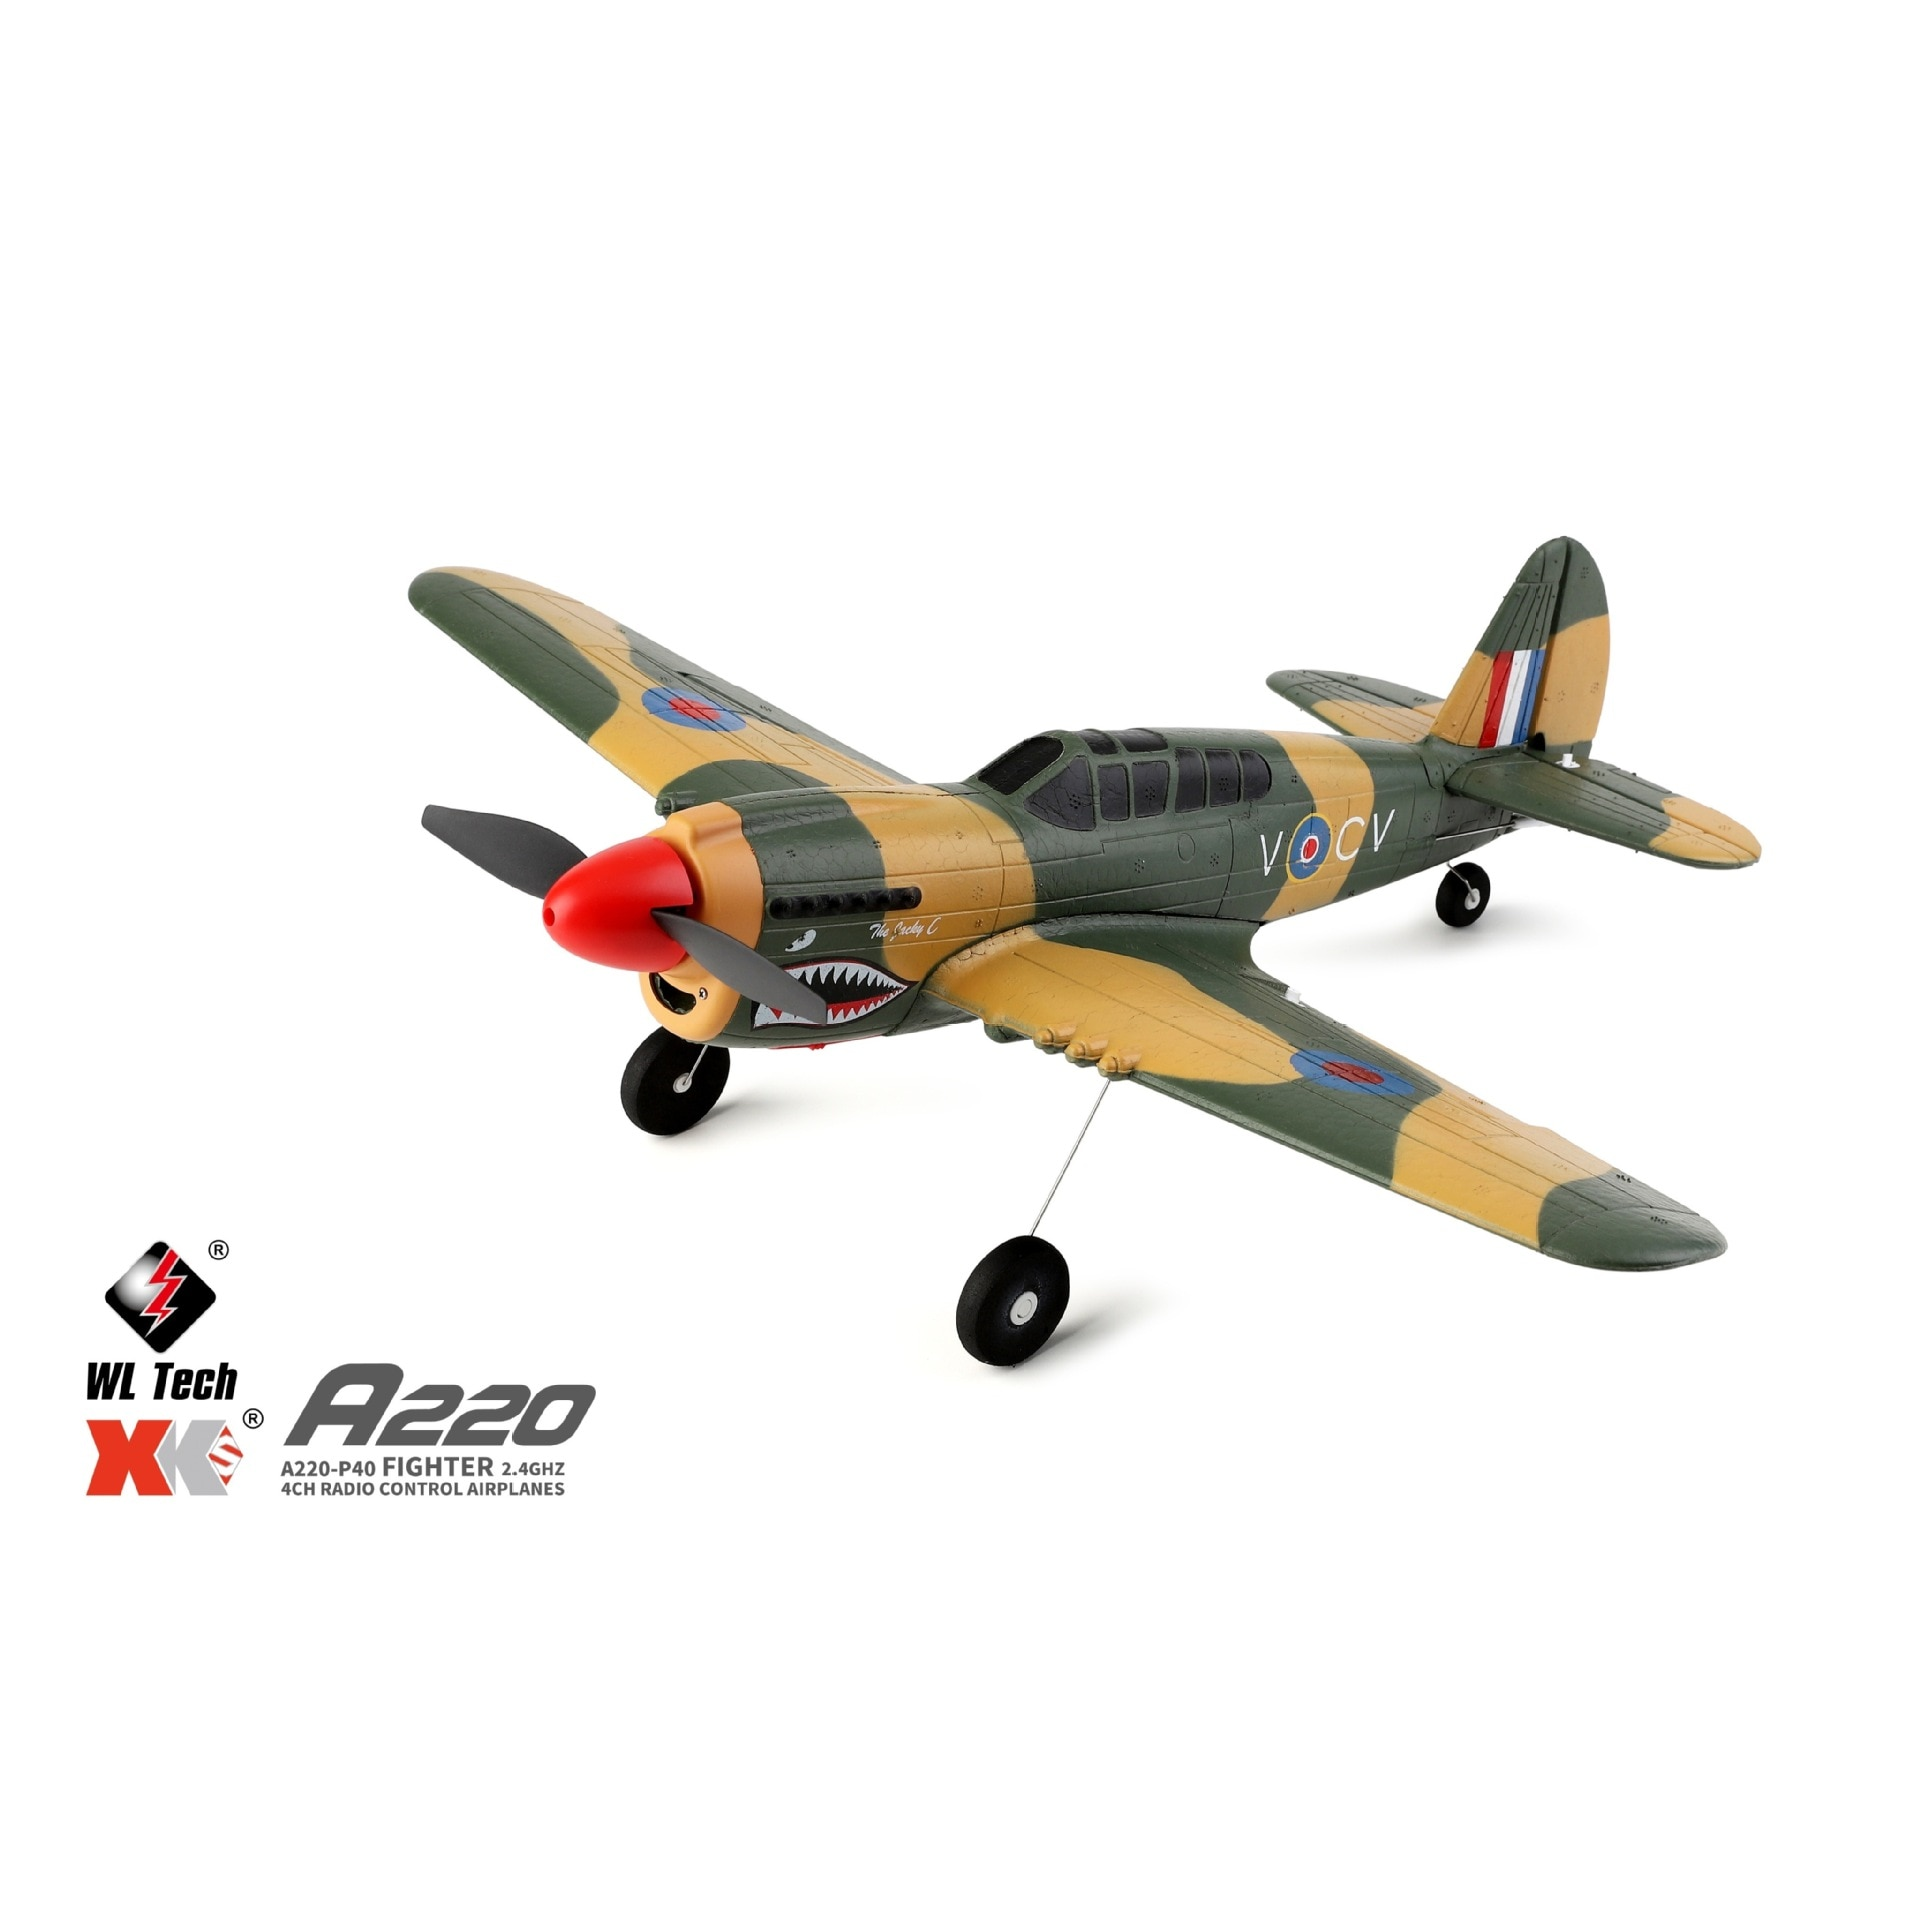 Wltoys RC Plane XK A220 P40 4Ch Glider 2.4G Radio Control aircraft EPP Fixed Wing Electric Airplane outdoor fly toys for boys enlarge